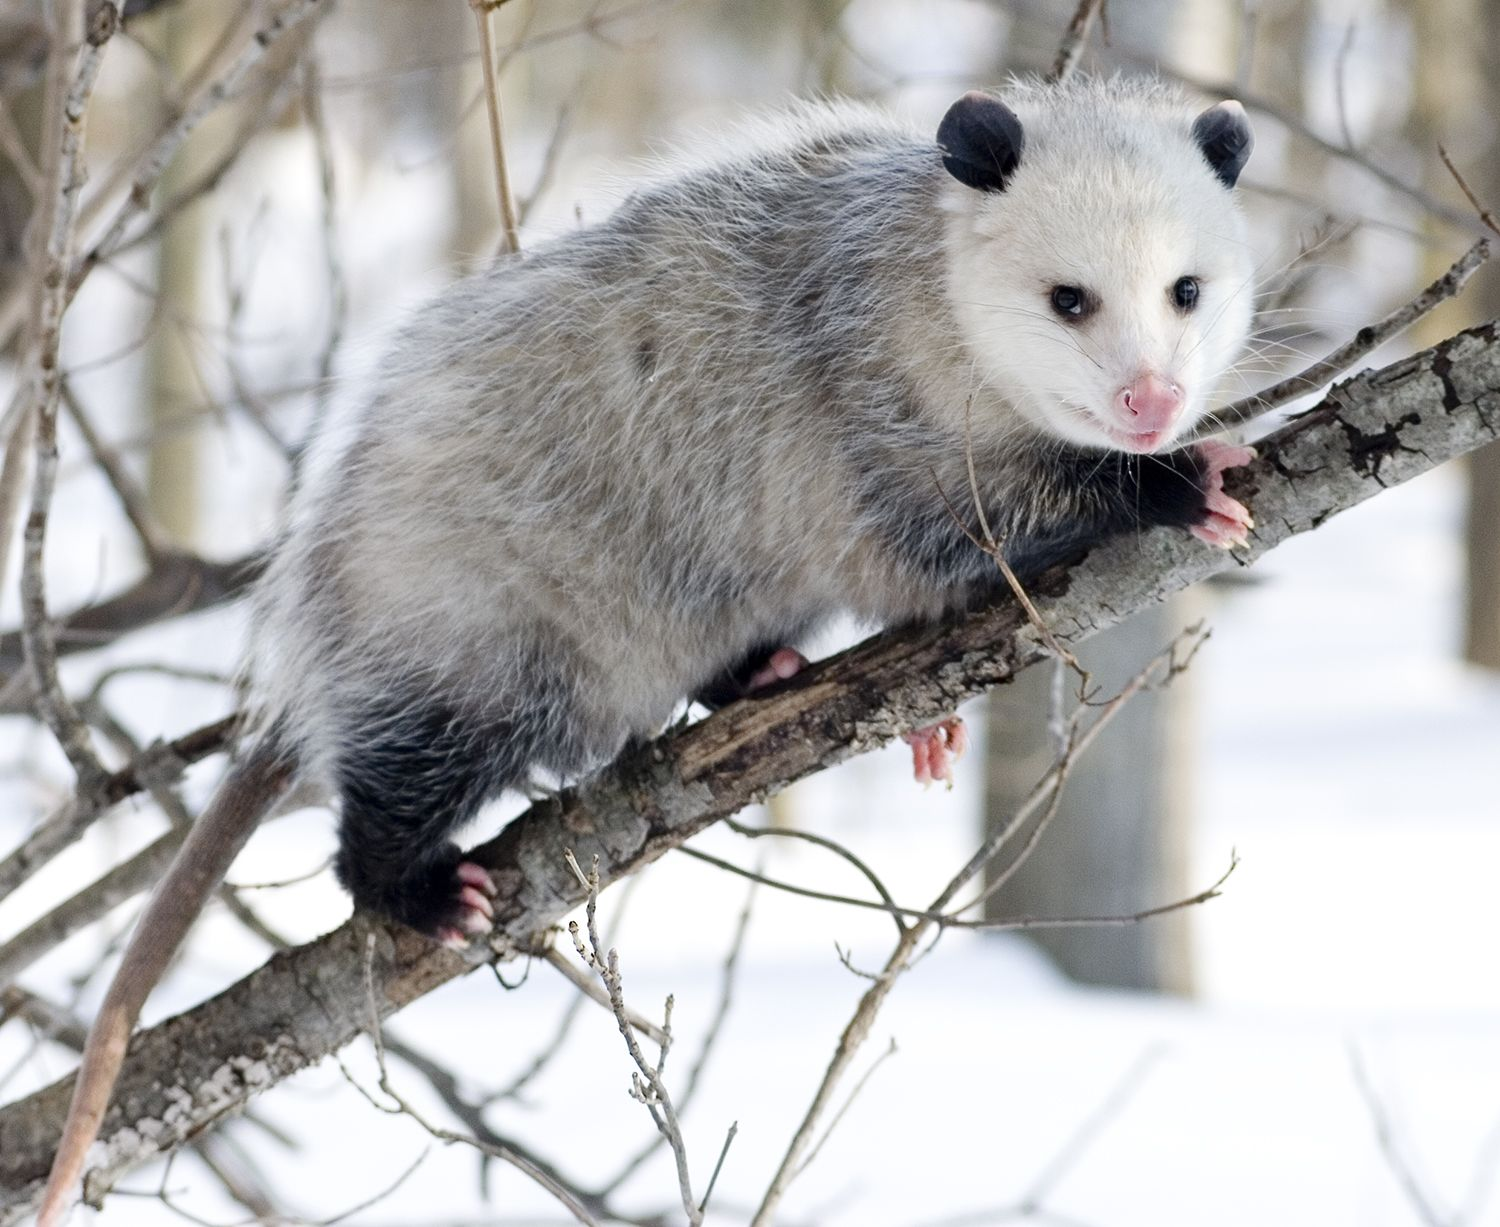 new york ecologist says opossums are very efficient tick killers